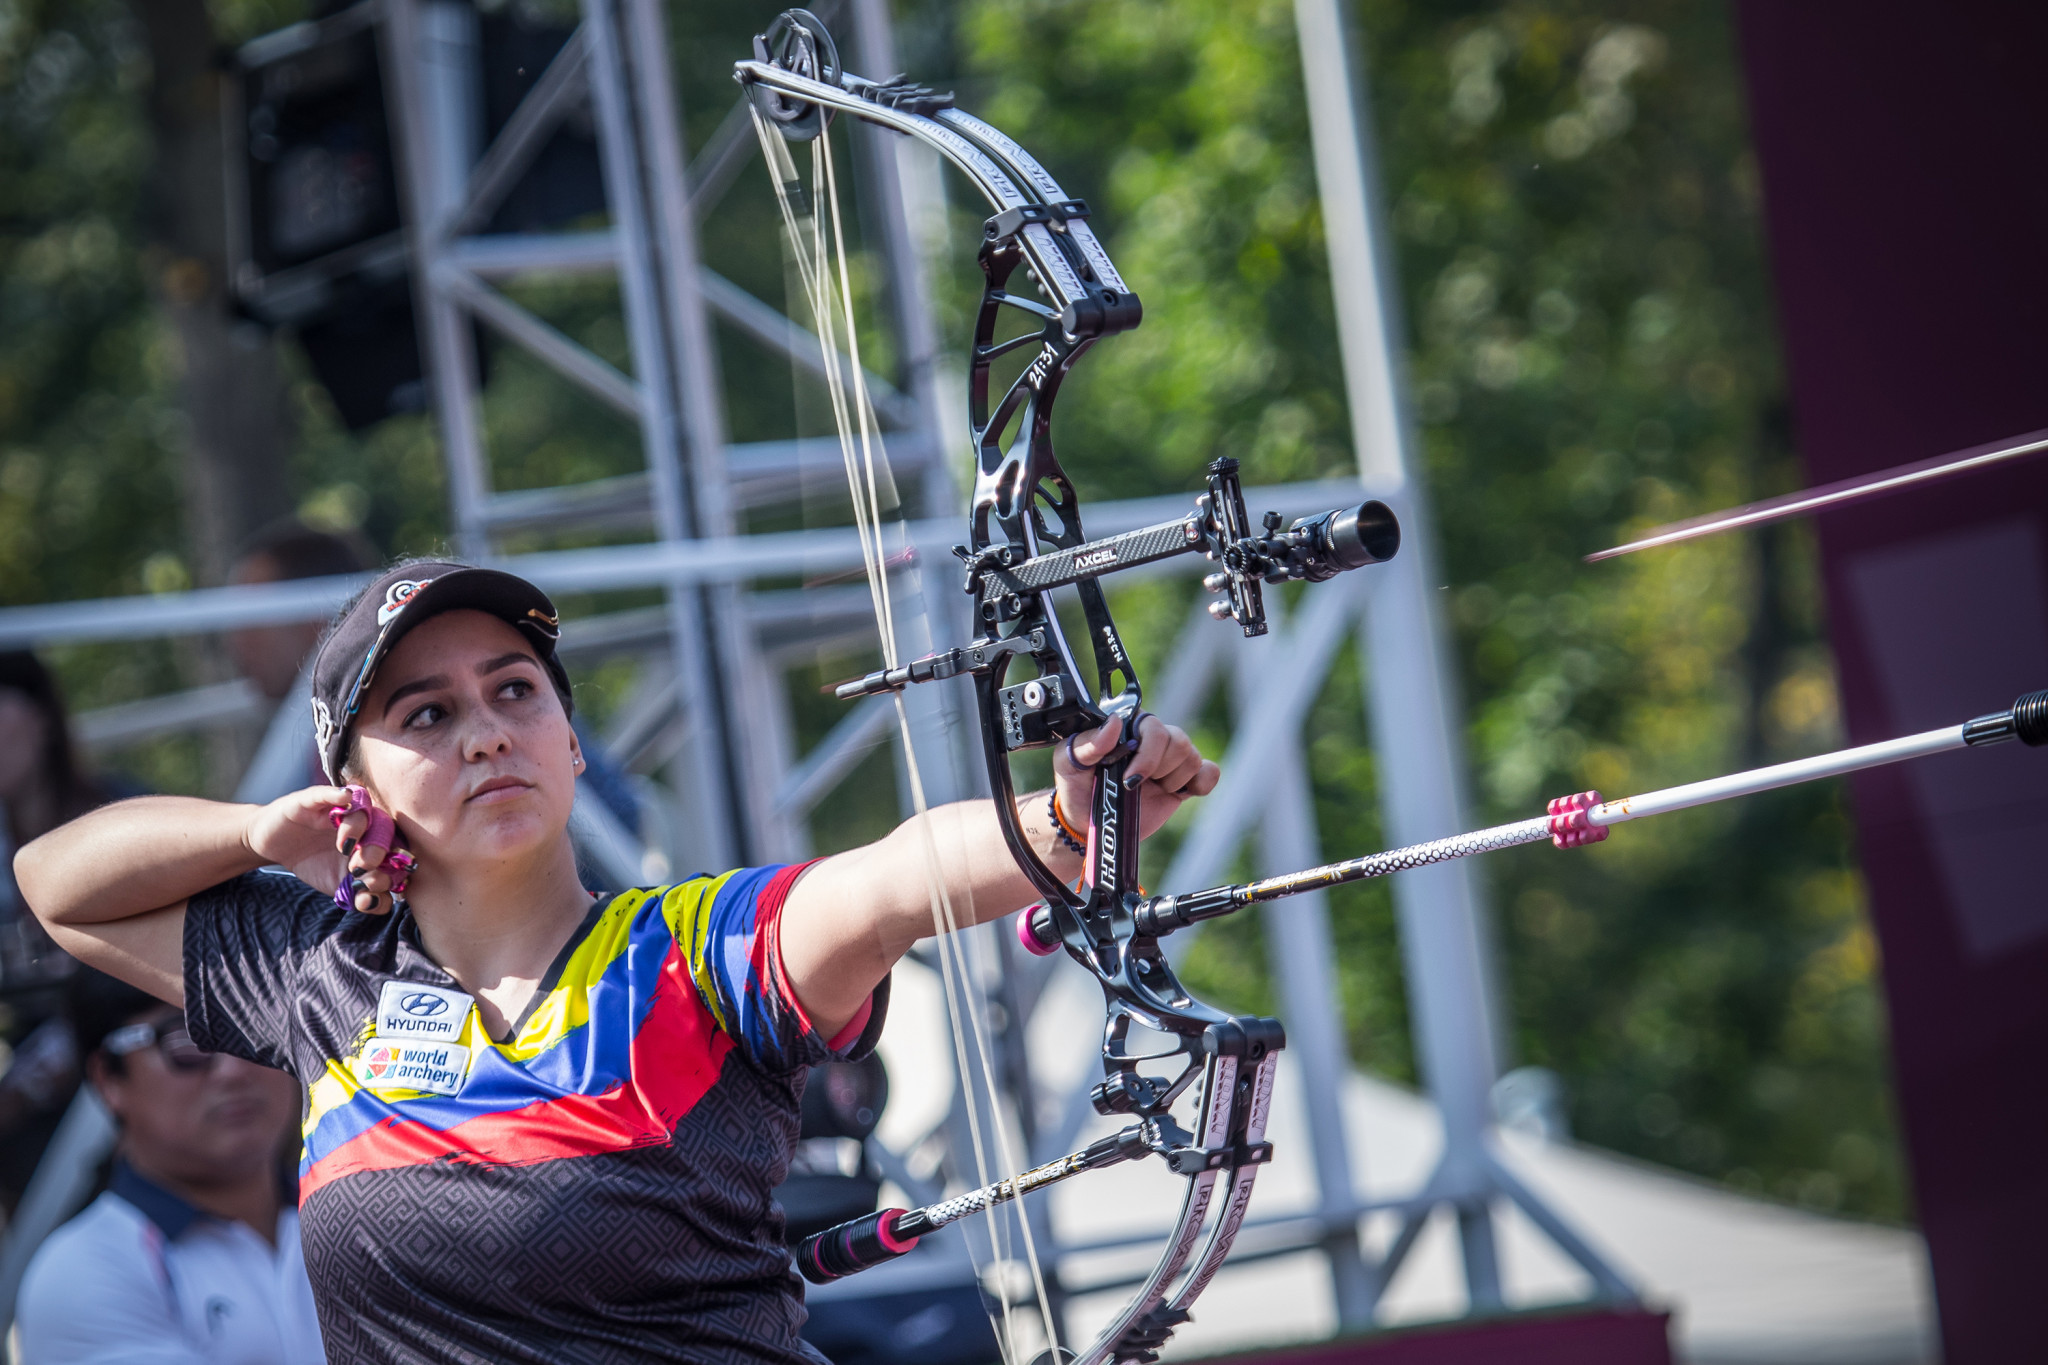 López triumphs in inaugural World Archery Lockdown Knockout